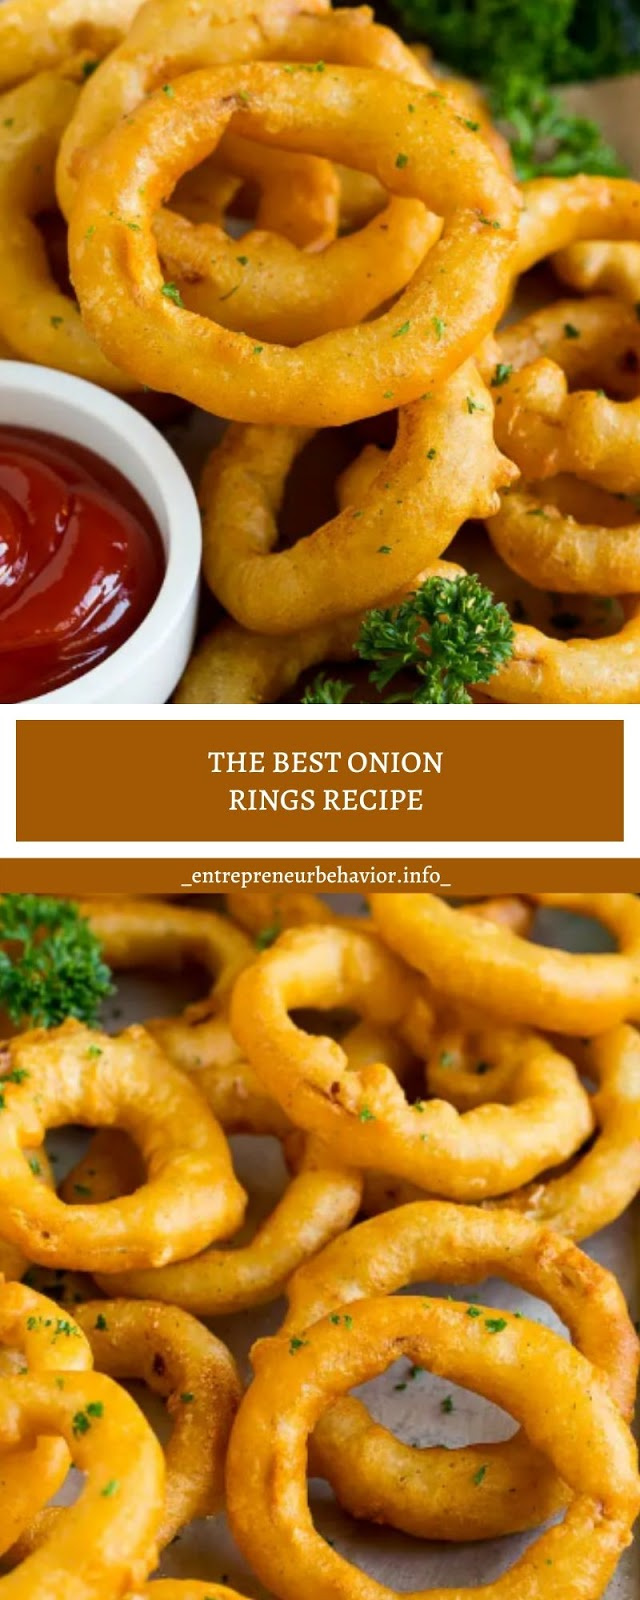 THE BEST ONION RINGS RECIPE